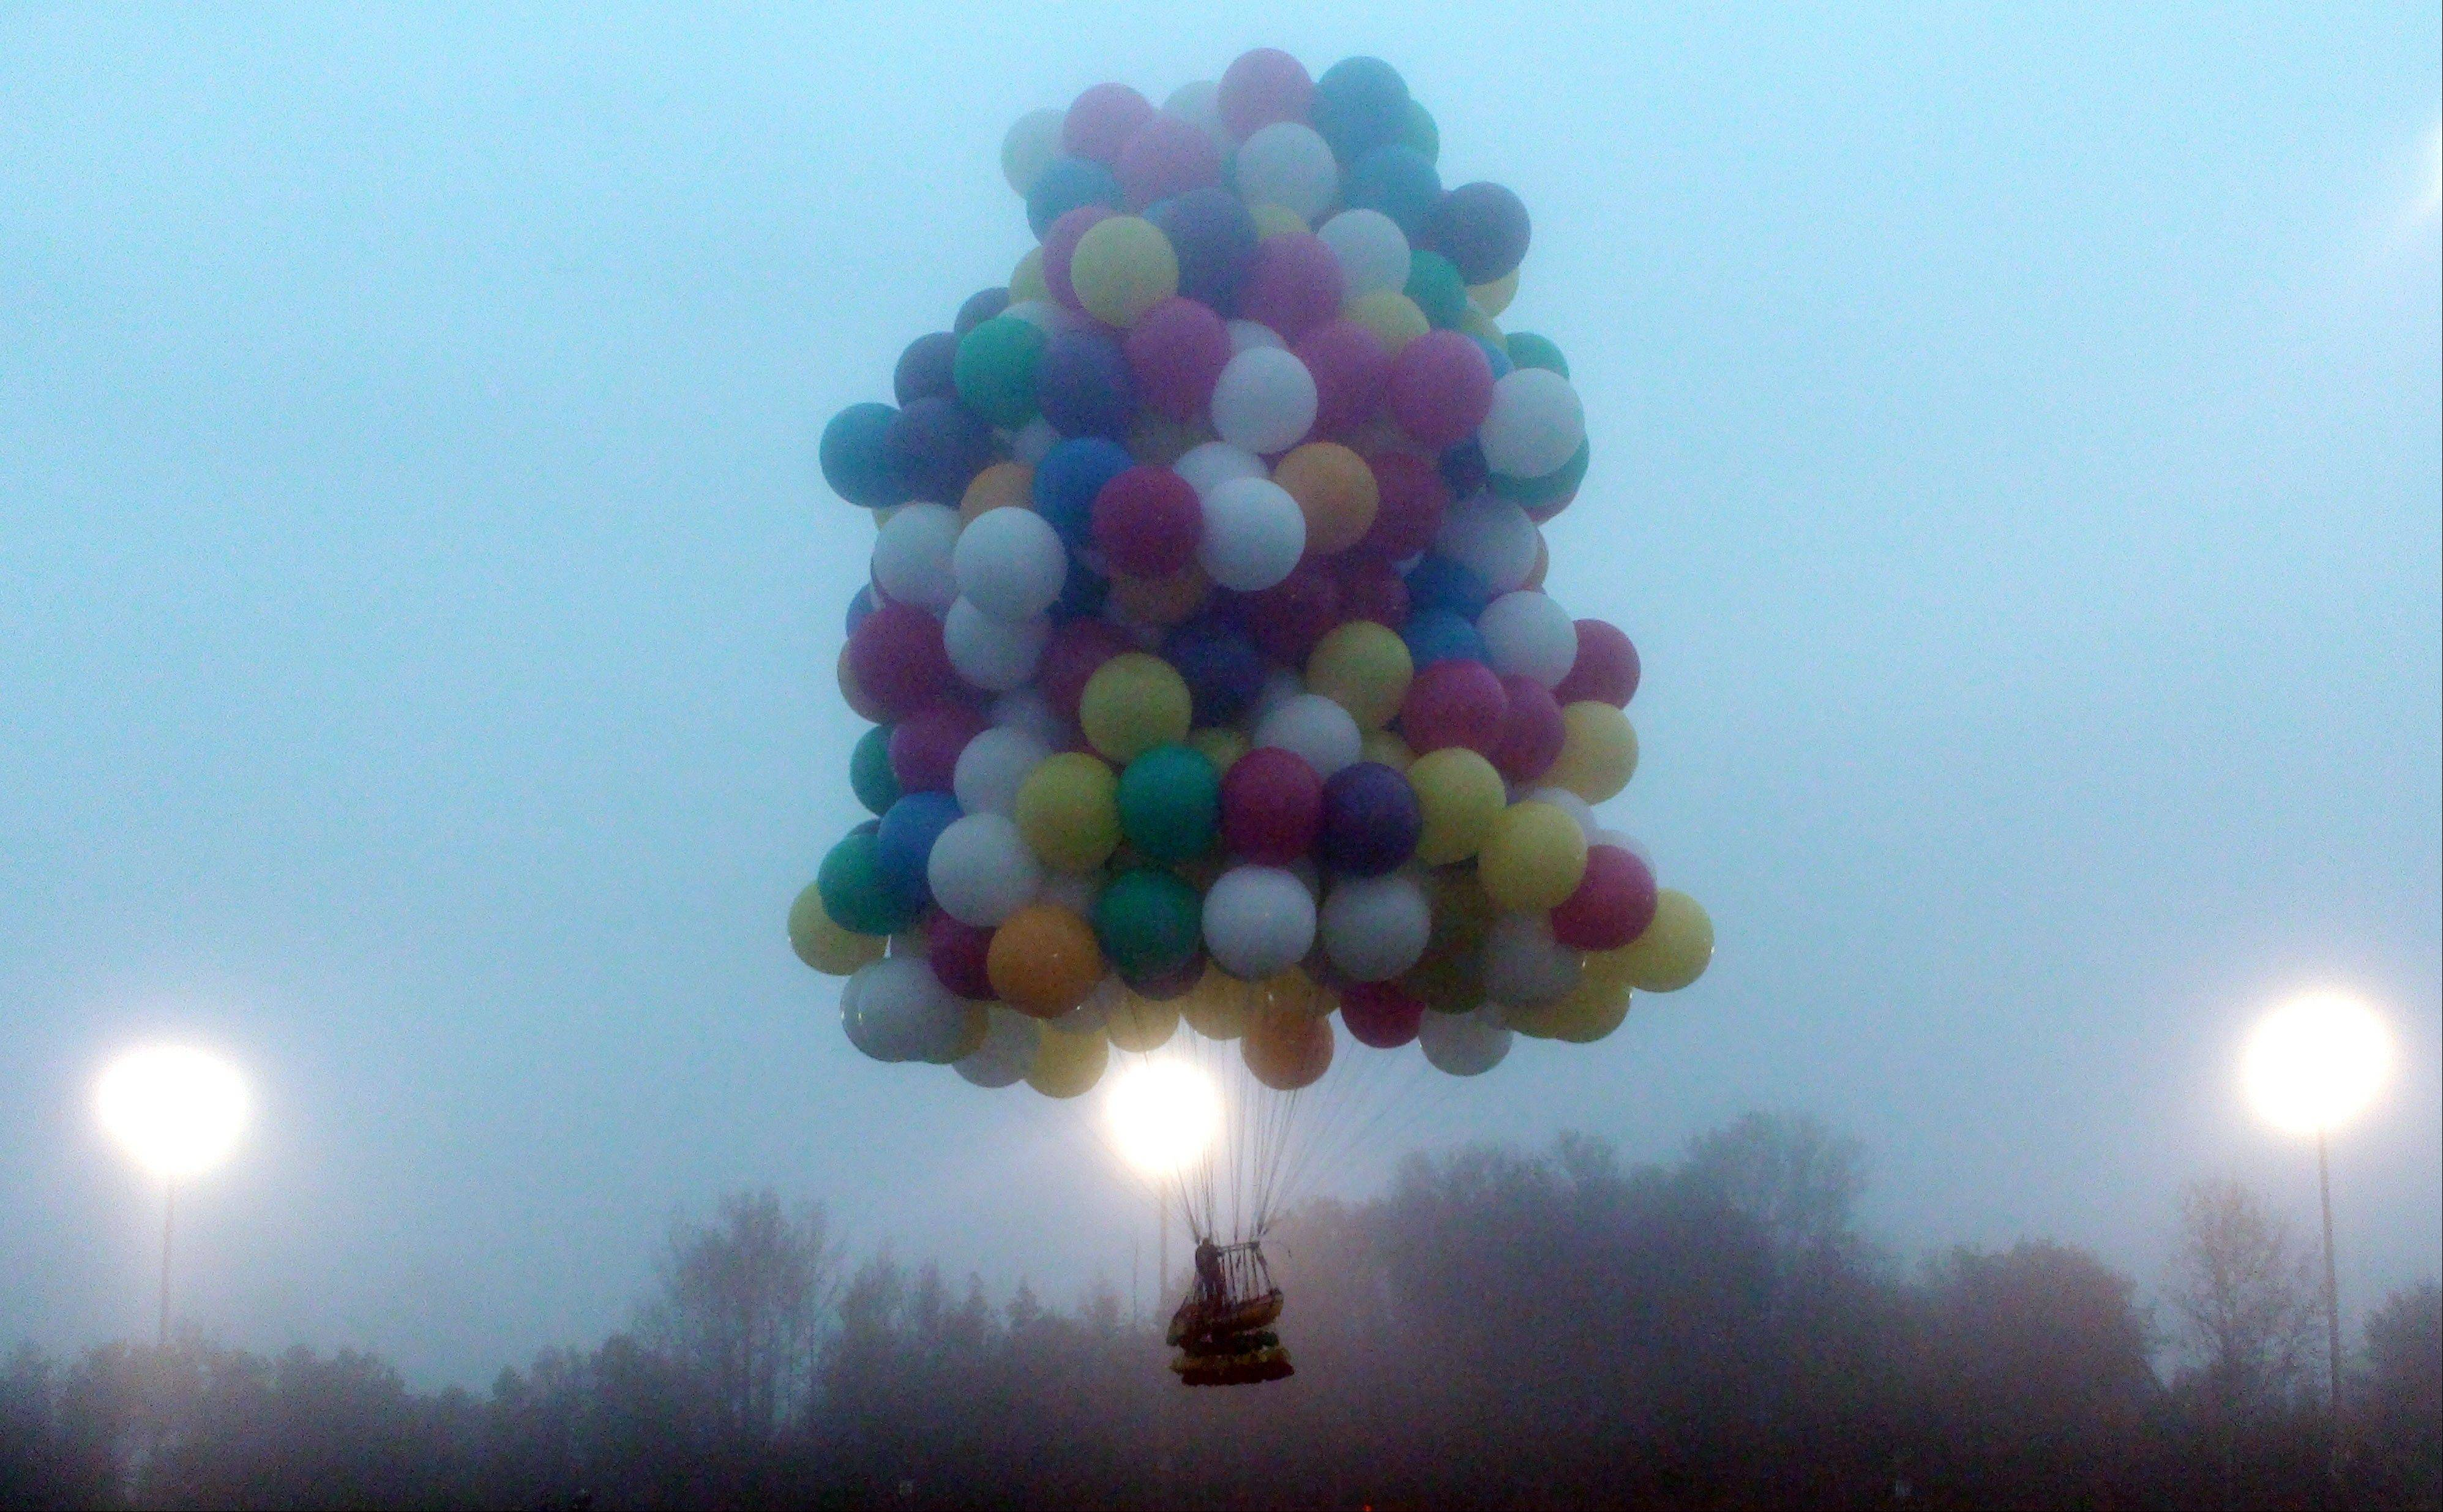 A balloon cluster carrying Jonathan Trappe lifts off from Caribou, Maine, Thursday, Sept. 12, 2013. Trappe lifted off Thursday using hundreds of helium-filled balloons clustered together. Trappe hoped to be the first person to successfully complete a trans-Atlantic flight using the balloon cluster, but he landed short of his goal in Newfoundland.